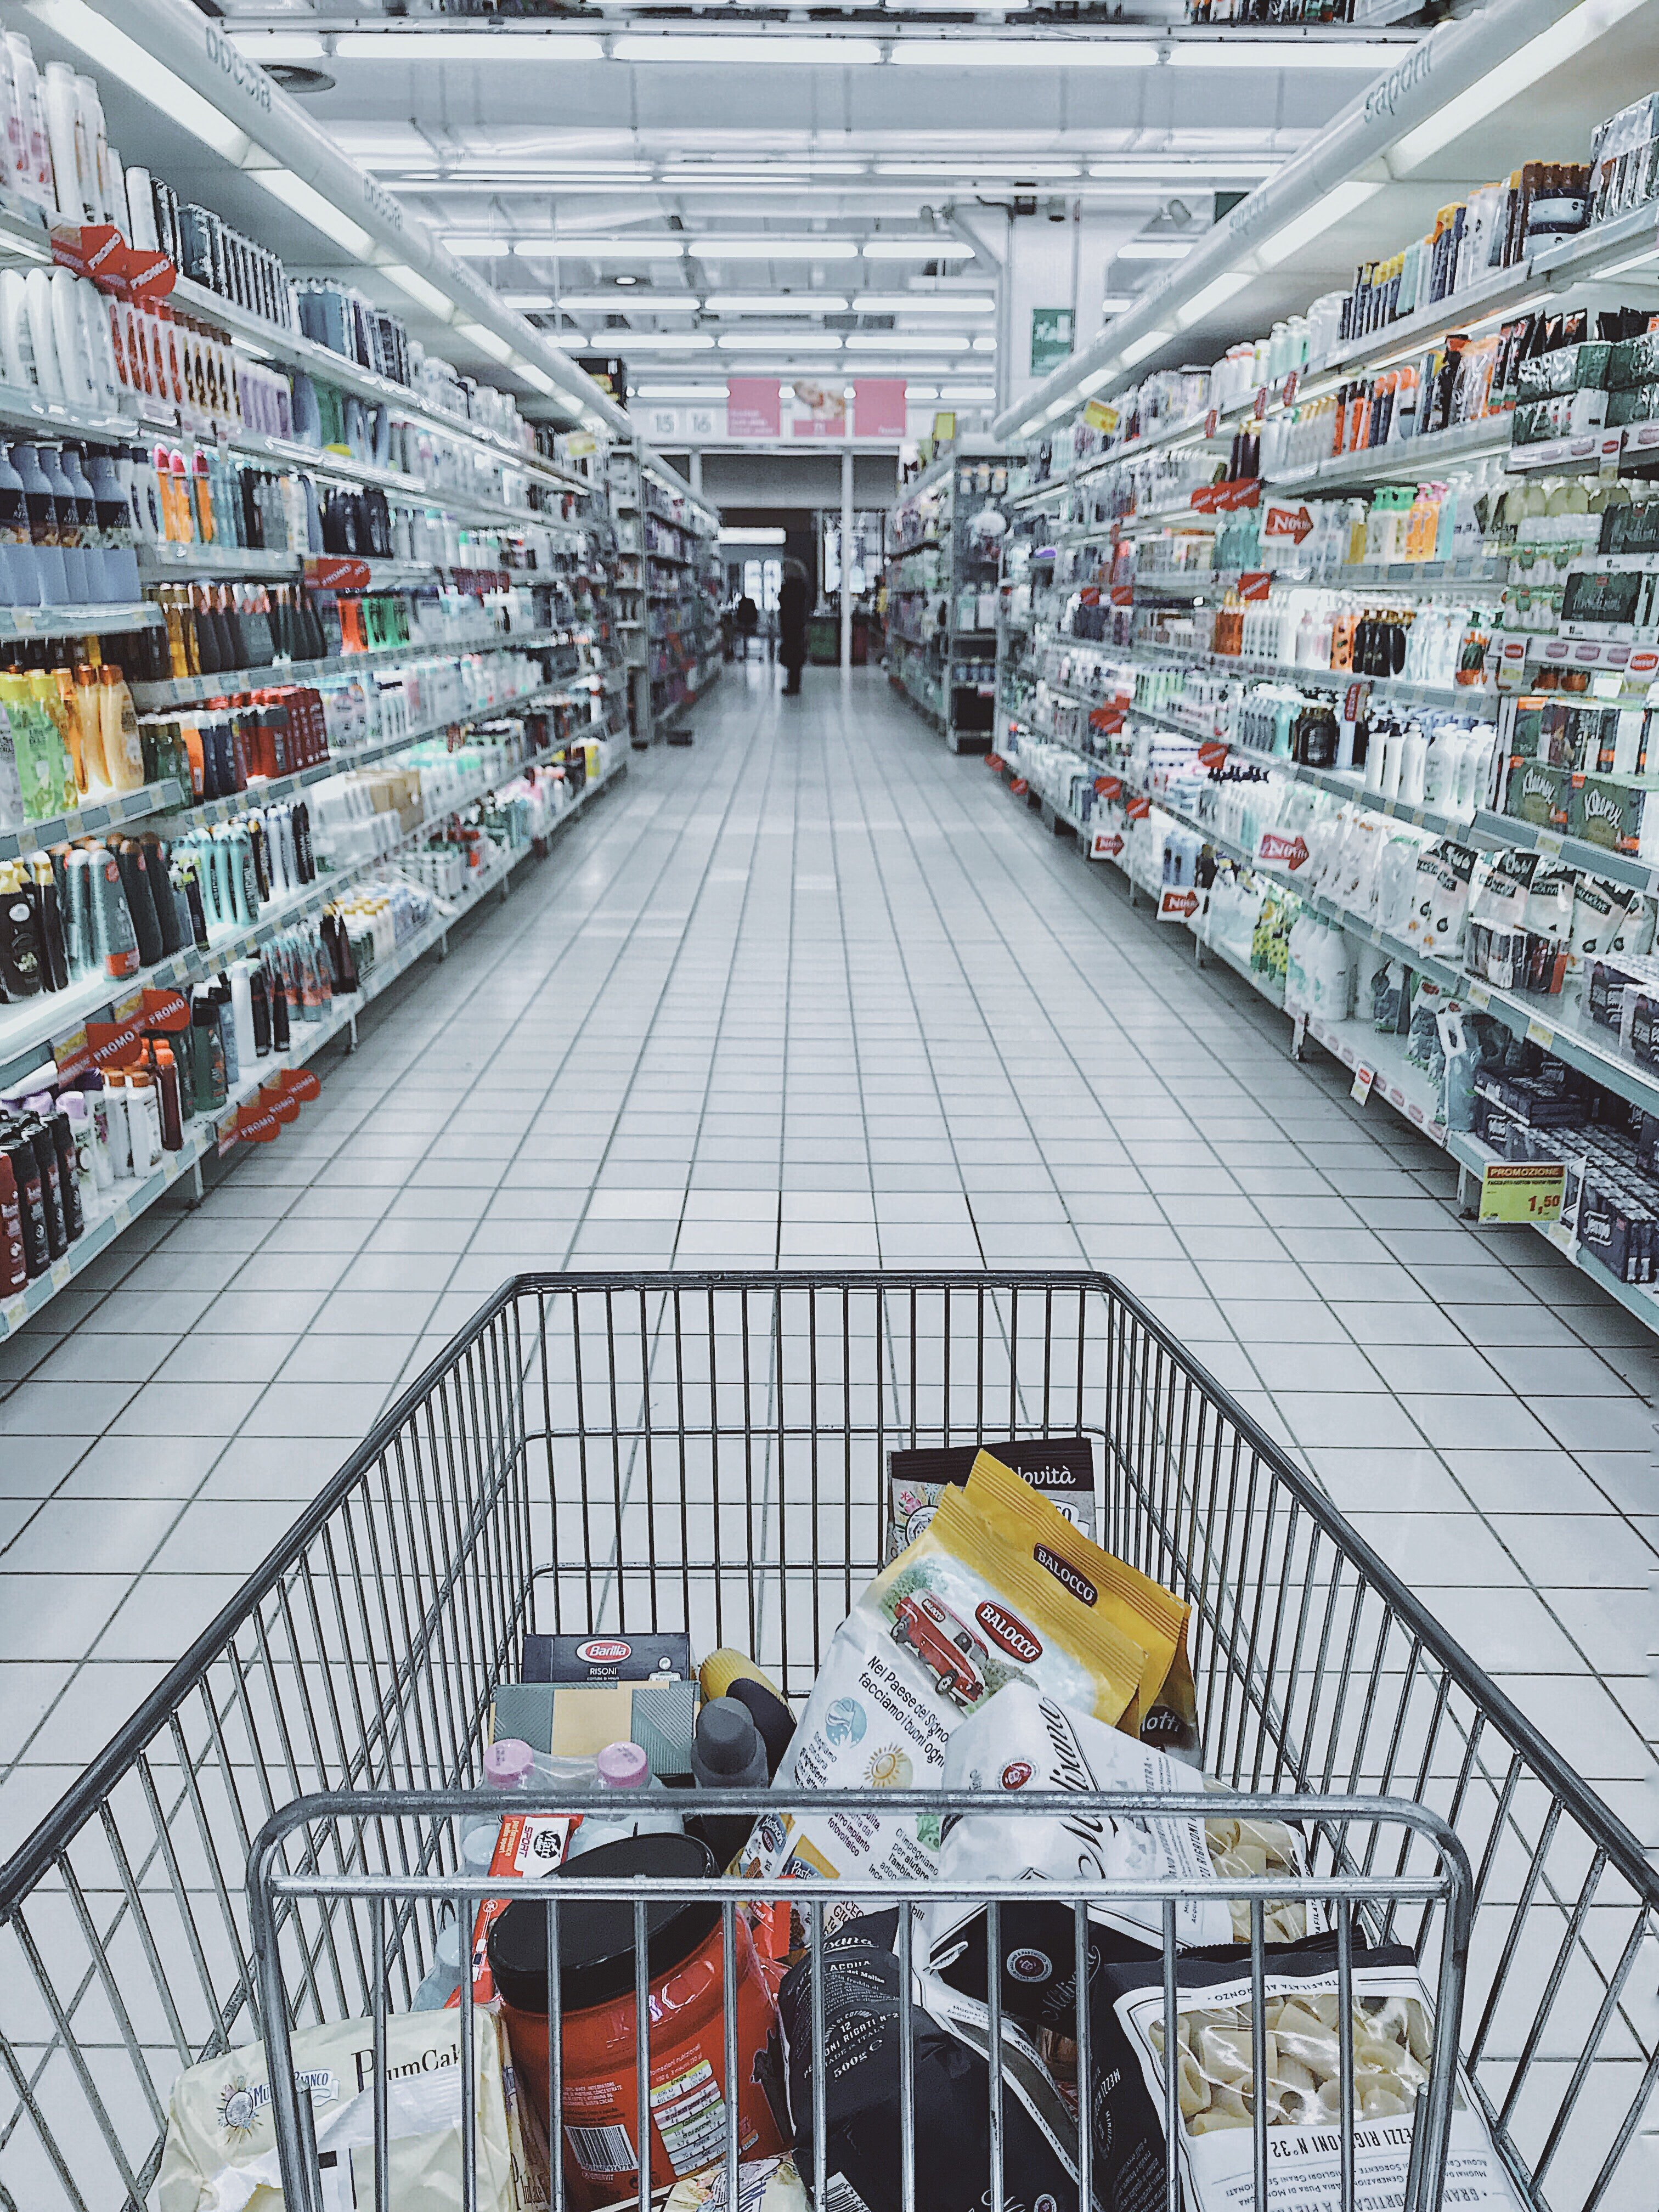 Betsy doing her groceries | Source: Pexels